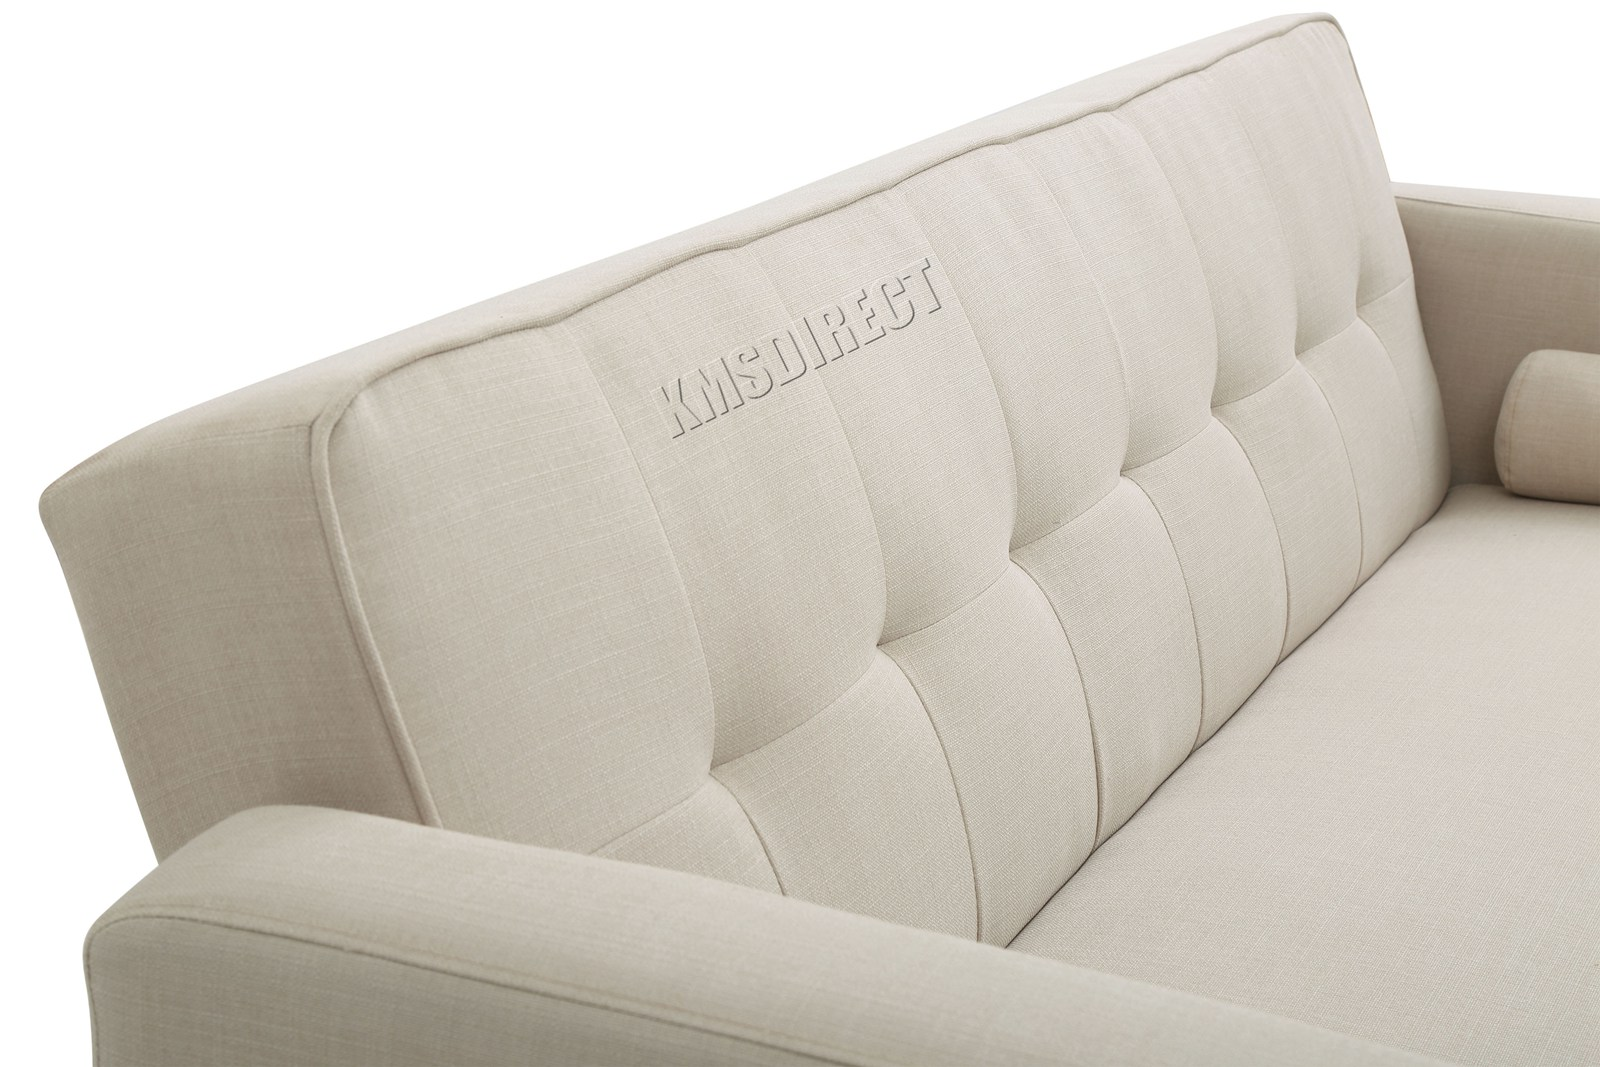 WestWood-Fabric-Sofa-Bed-3-Seater-Couch-Luxury-Modern-Home-Furniture-FSB04-New thumbnail 18